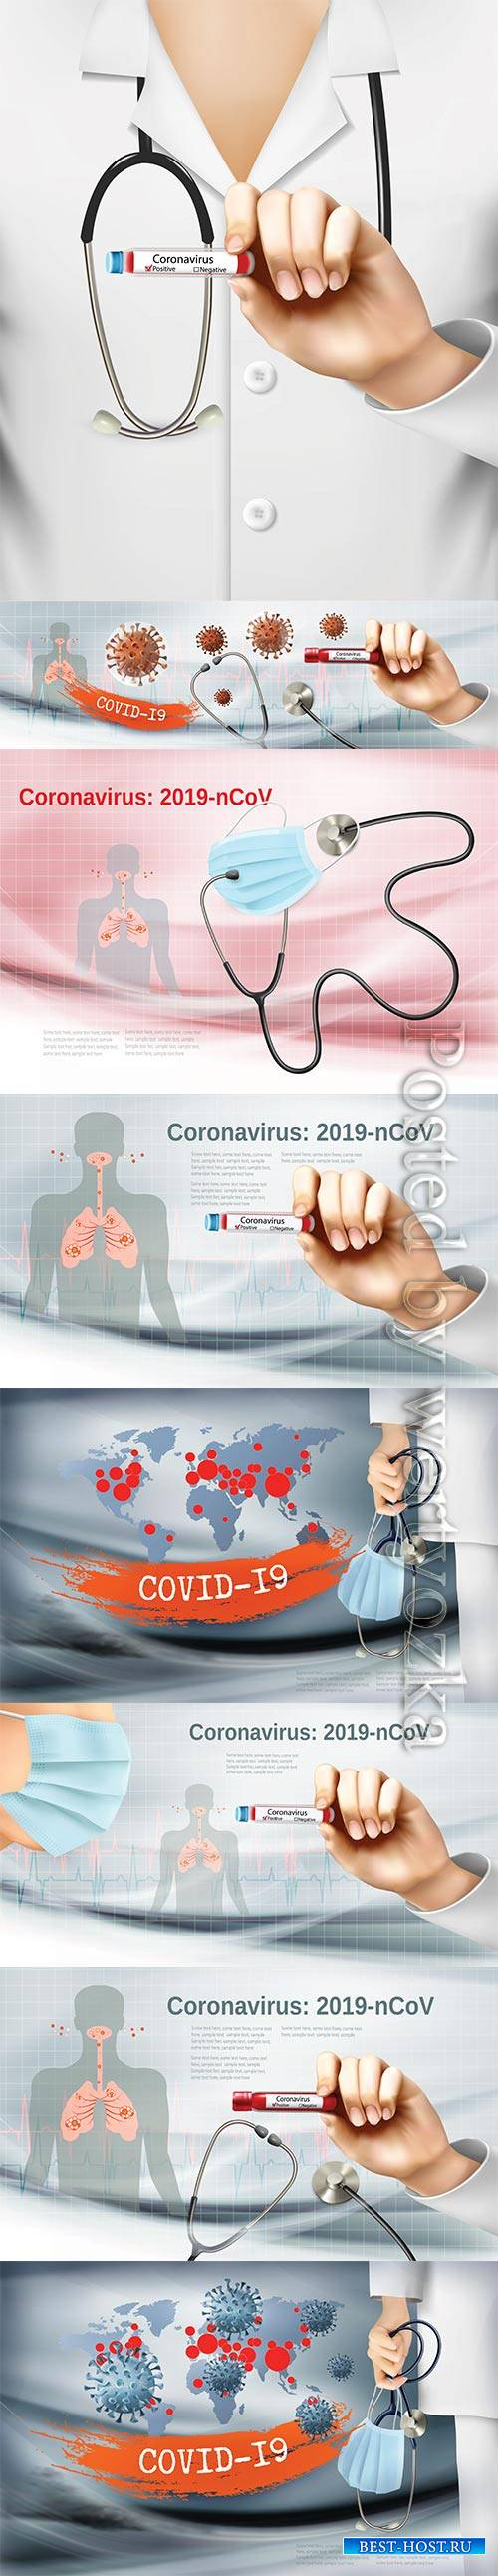 Coranavirus background with doctor holding tube with pasitiv test and stethoscope